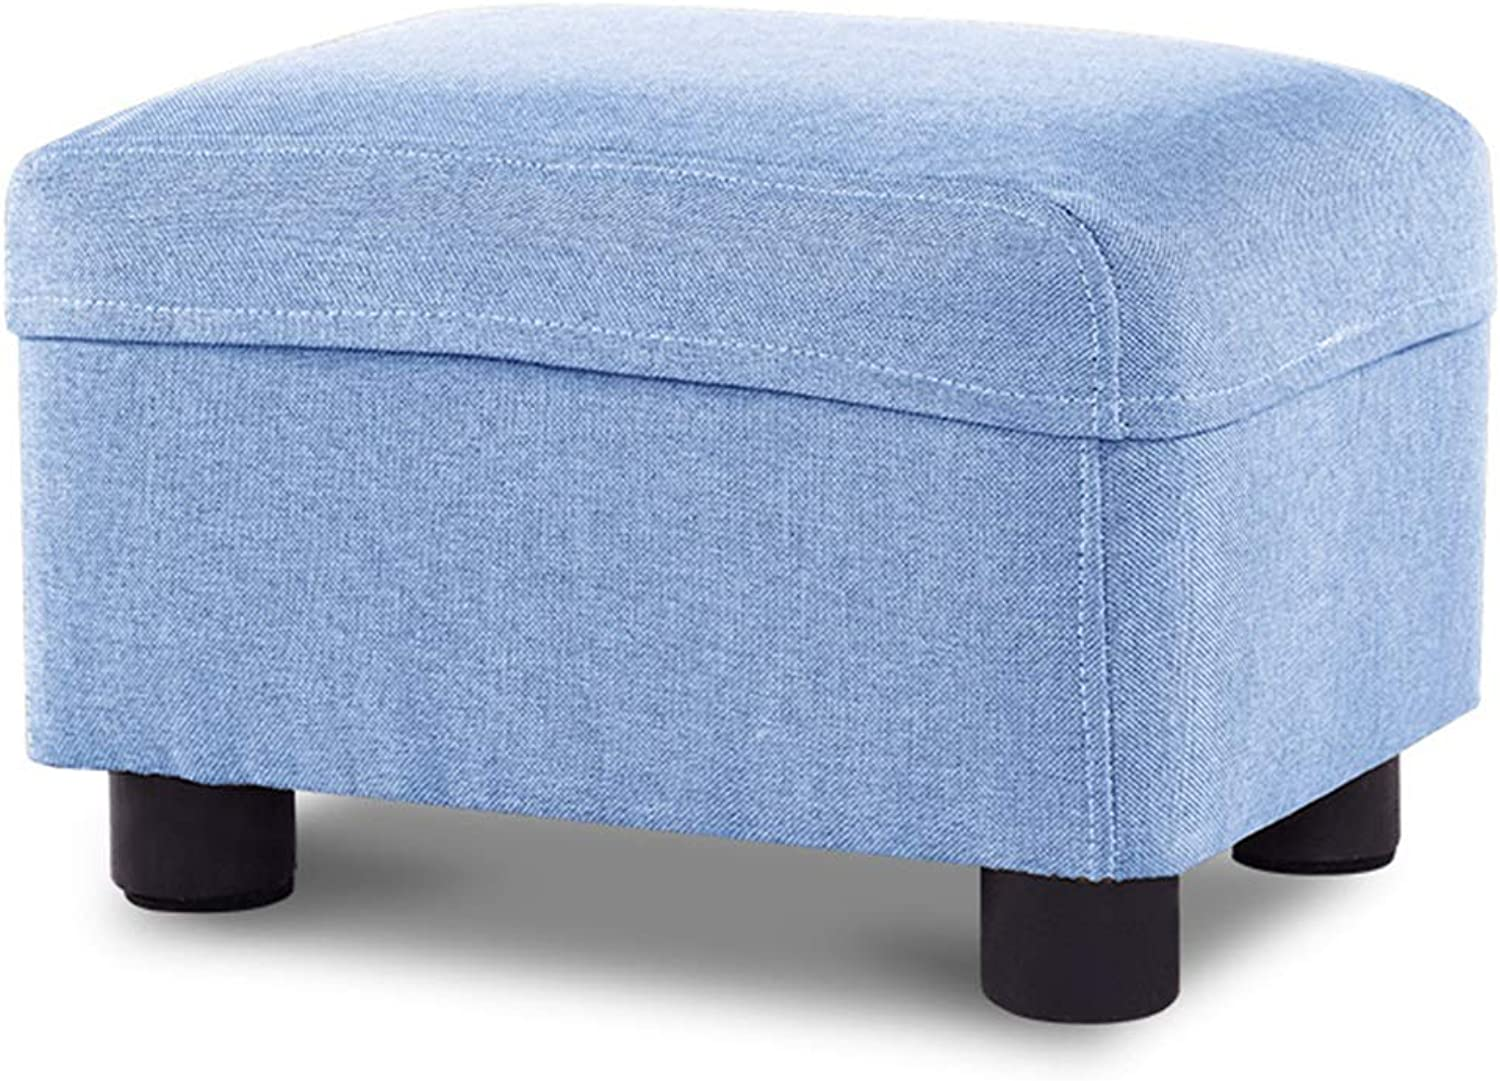 ZXQZ Stool Fabric Sofa Stool 27x37x20cm Household Pedal Square Stool (color   A)